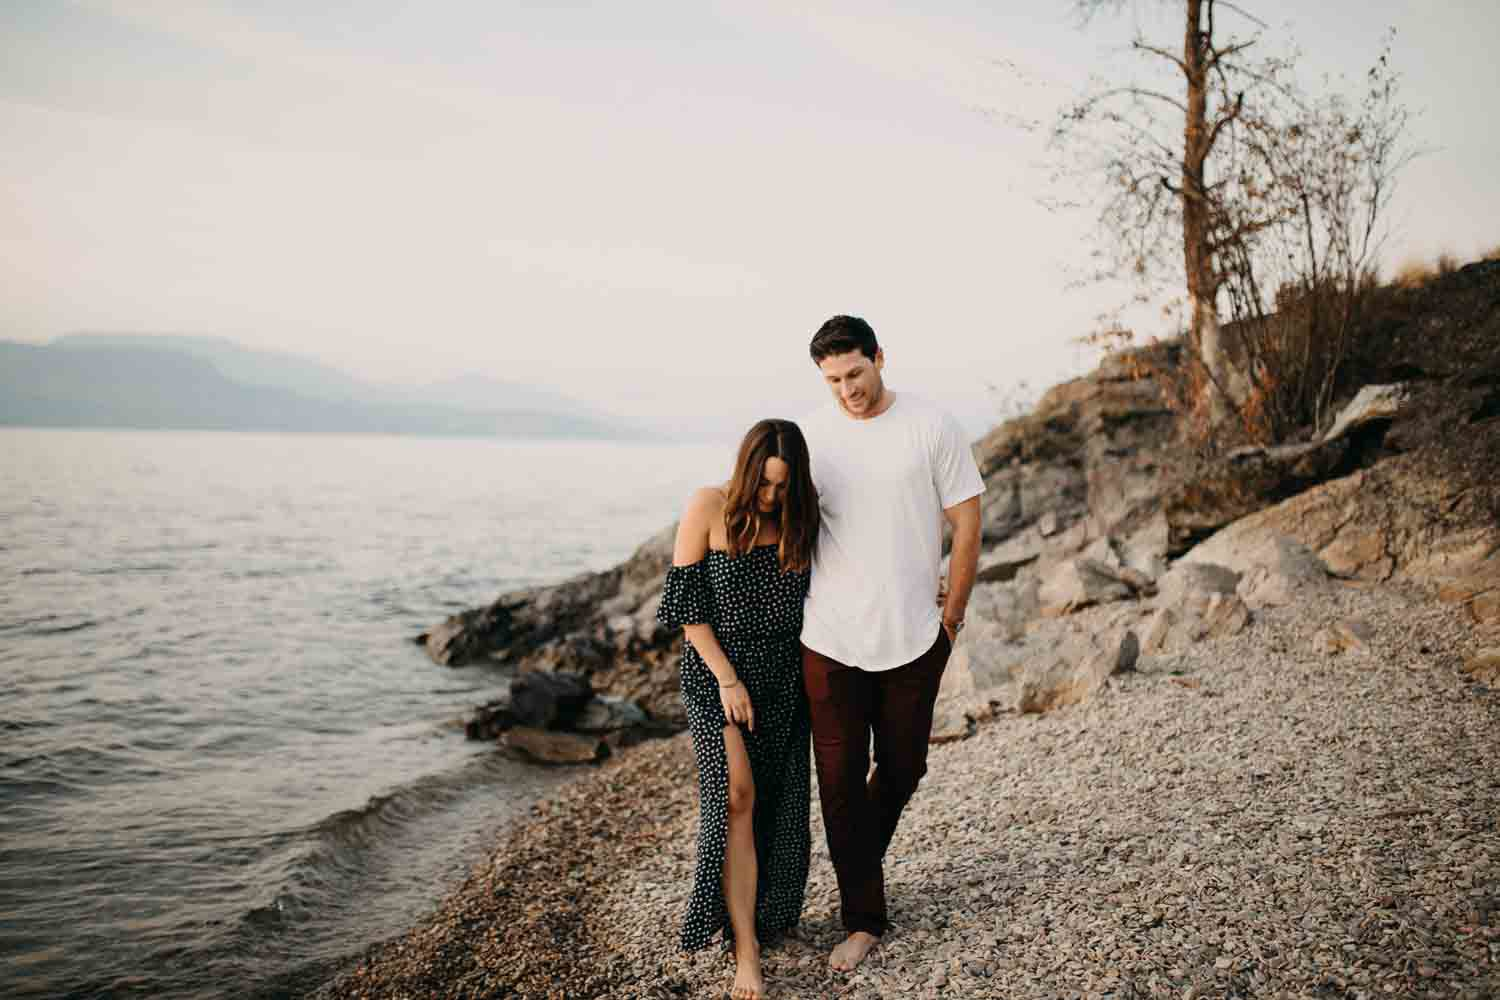 pacific North West couple Photographer ,socality, kelowna photographer, wedding photographer, kelownas couple photographer